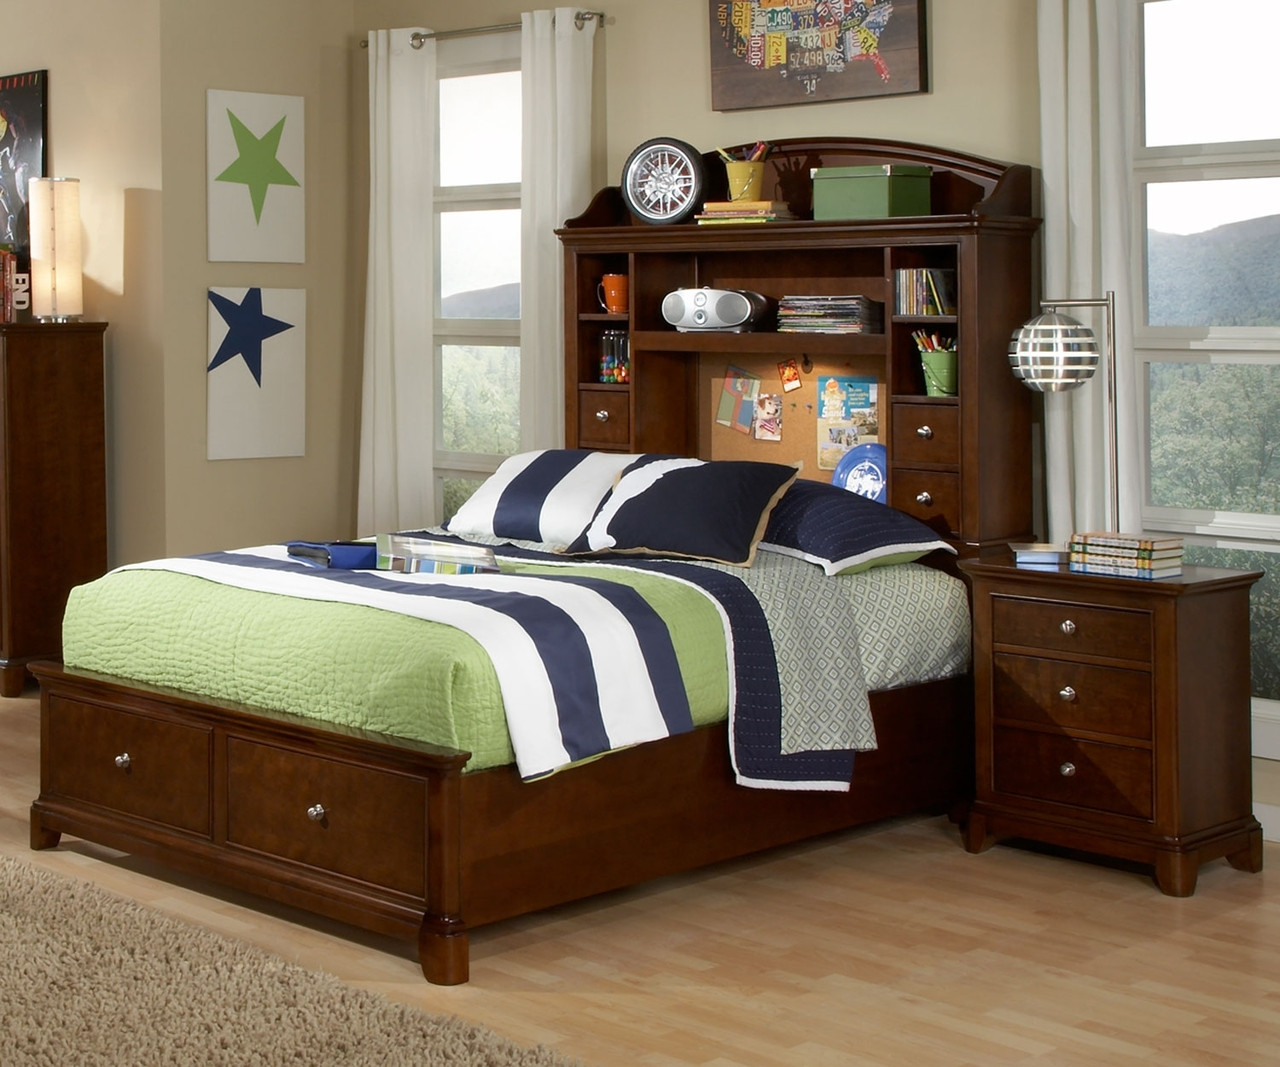 Impressions Full Size Bookcase Bed with Storage 2880 4804K